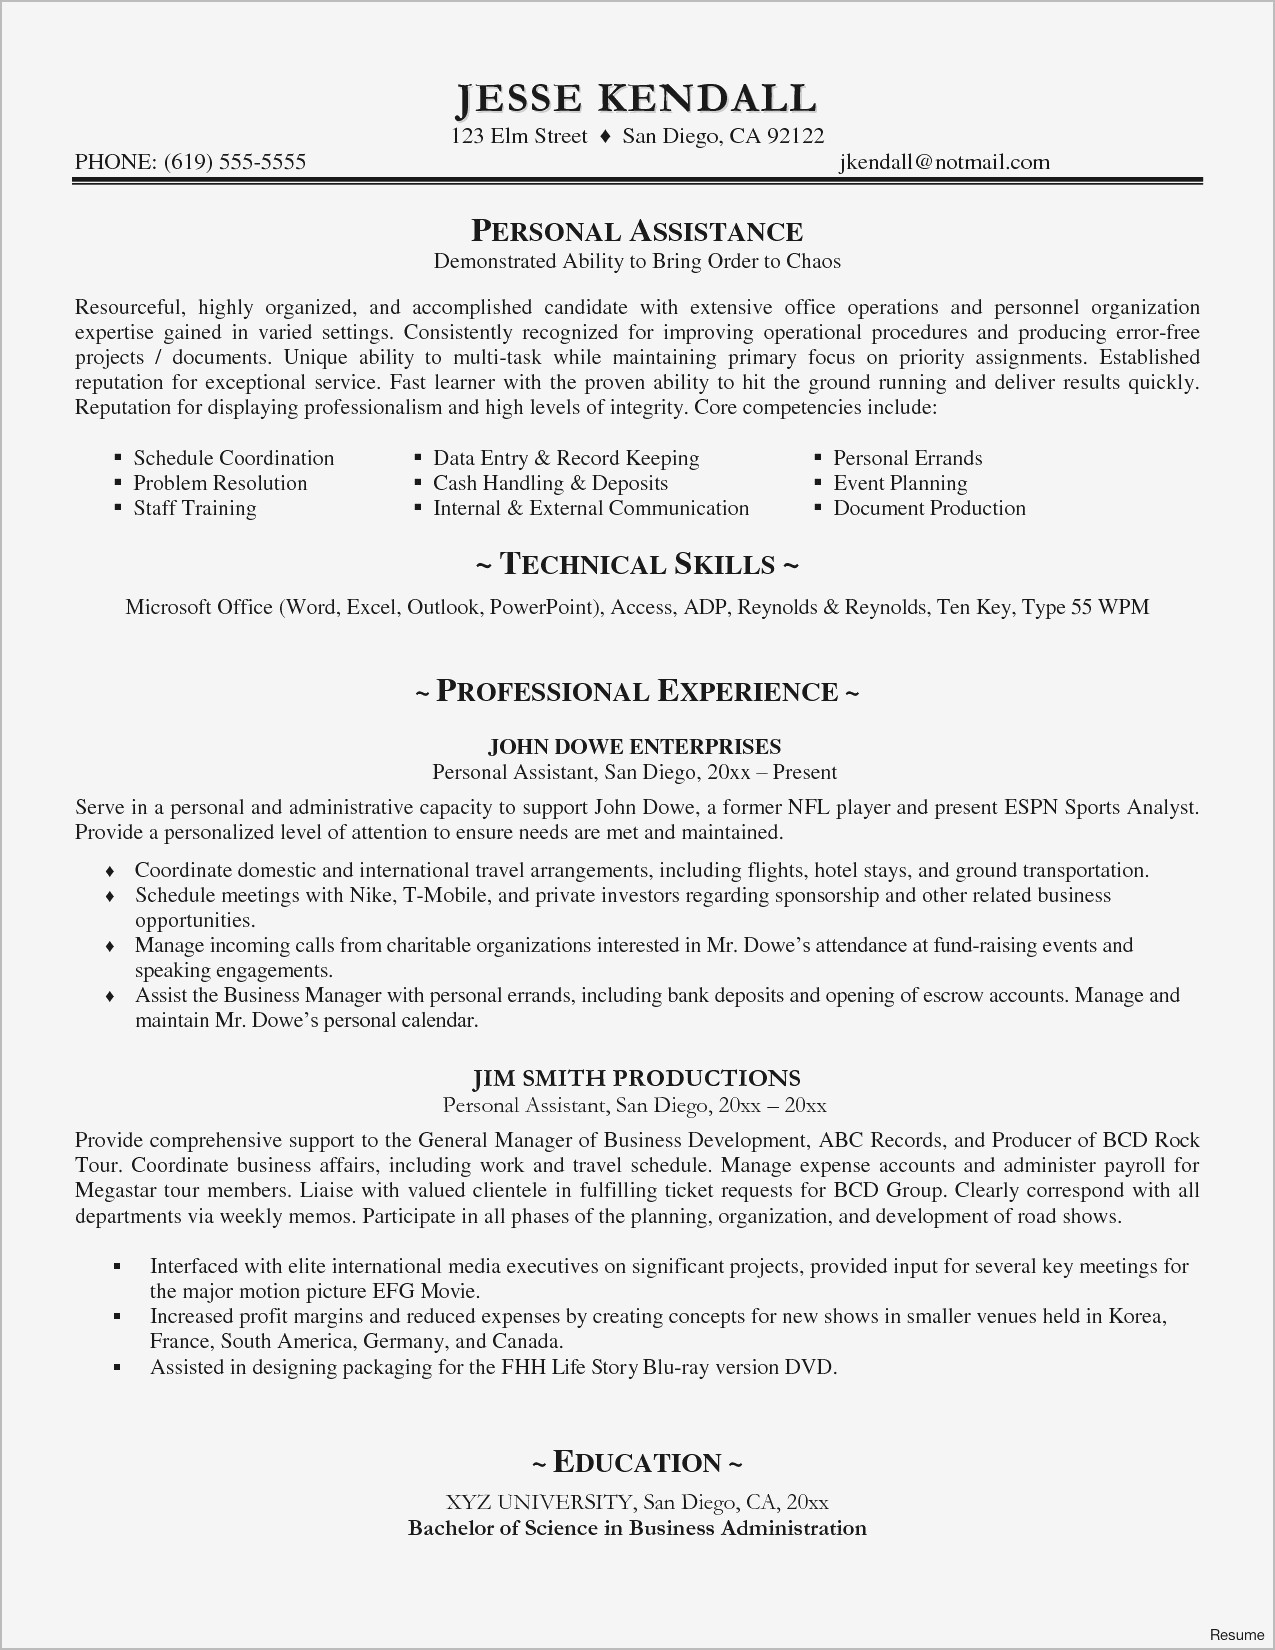 Common App Resume - Mon App Resume Lovely Help with Resumes Unique Best Reception